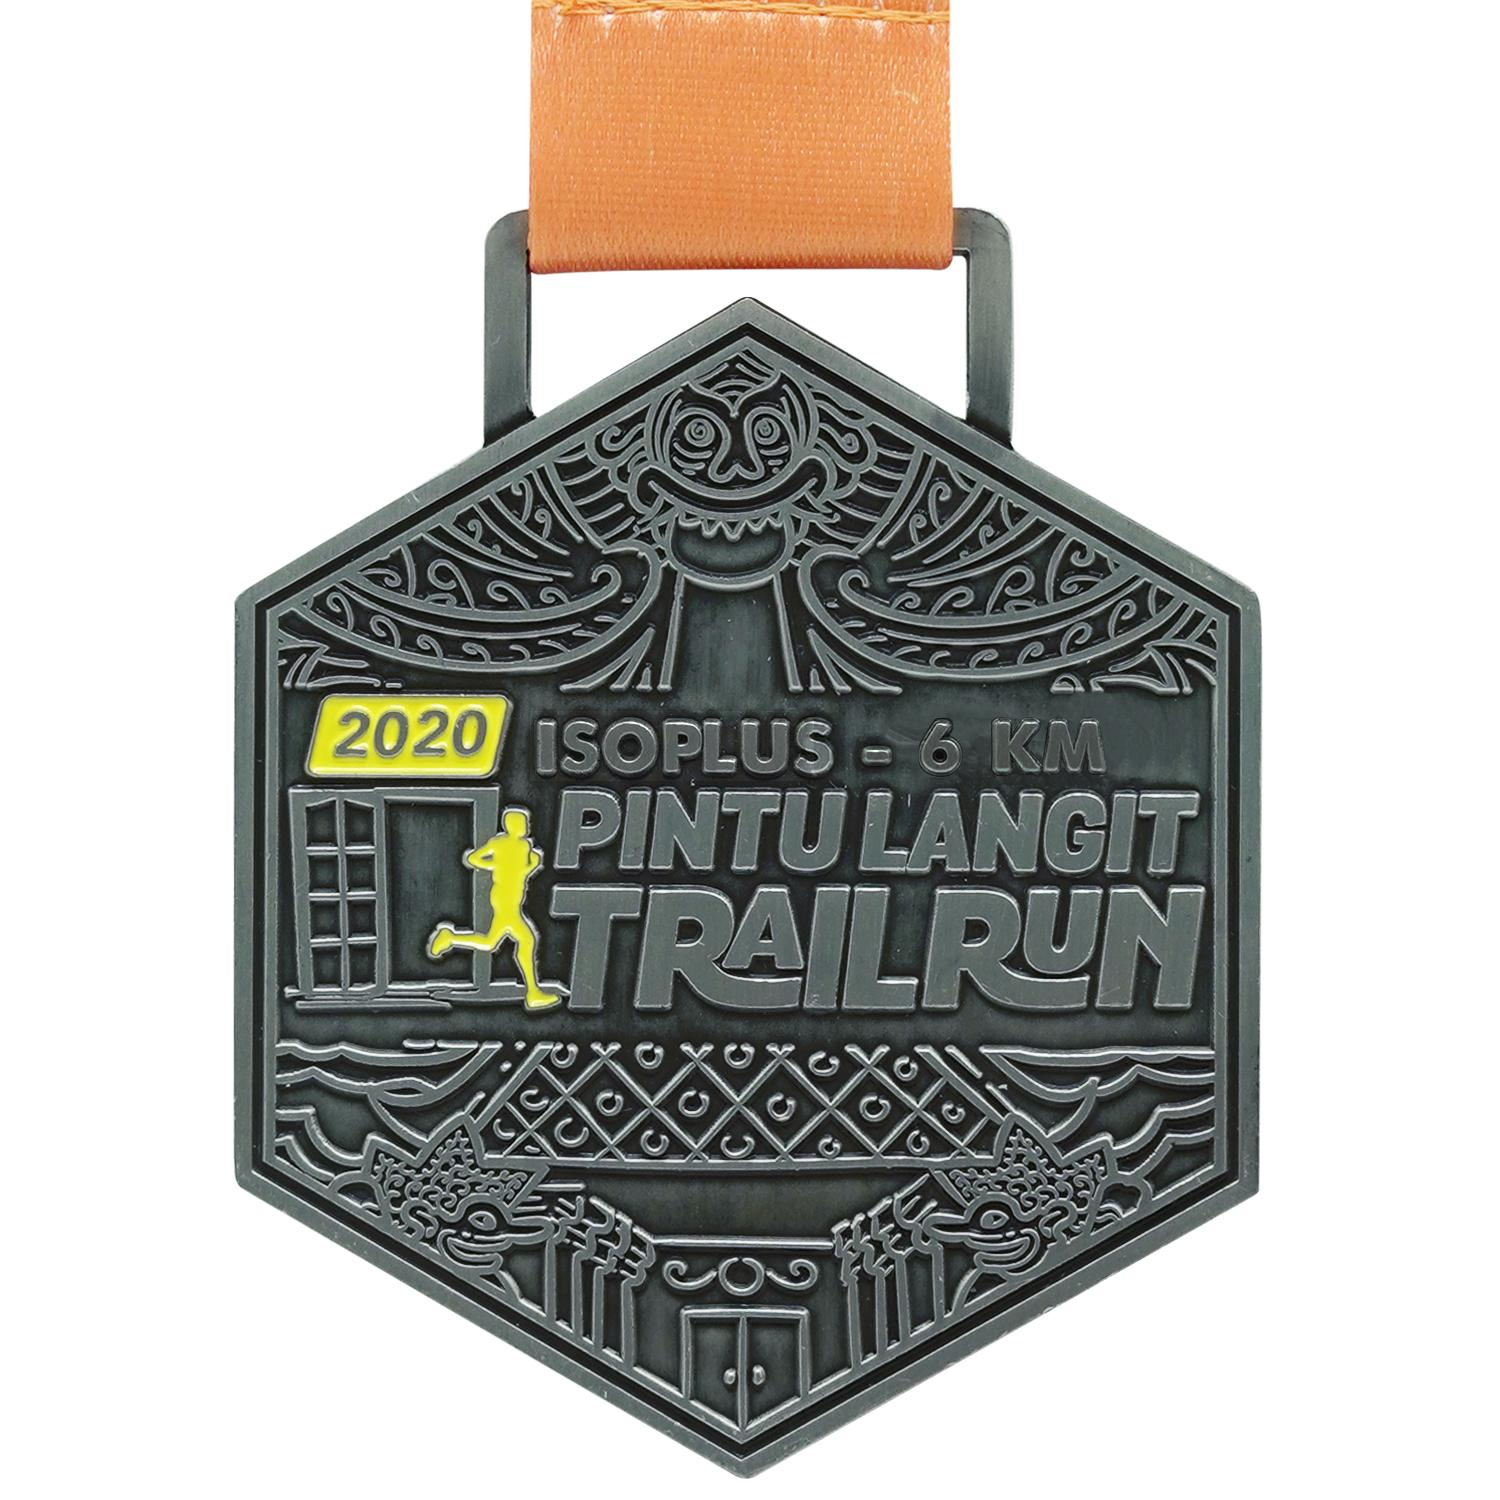 ISOPLUS - Pintu Langit Trail Run 2020